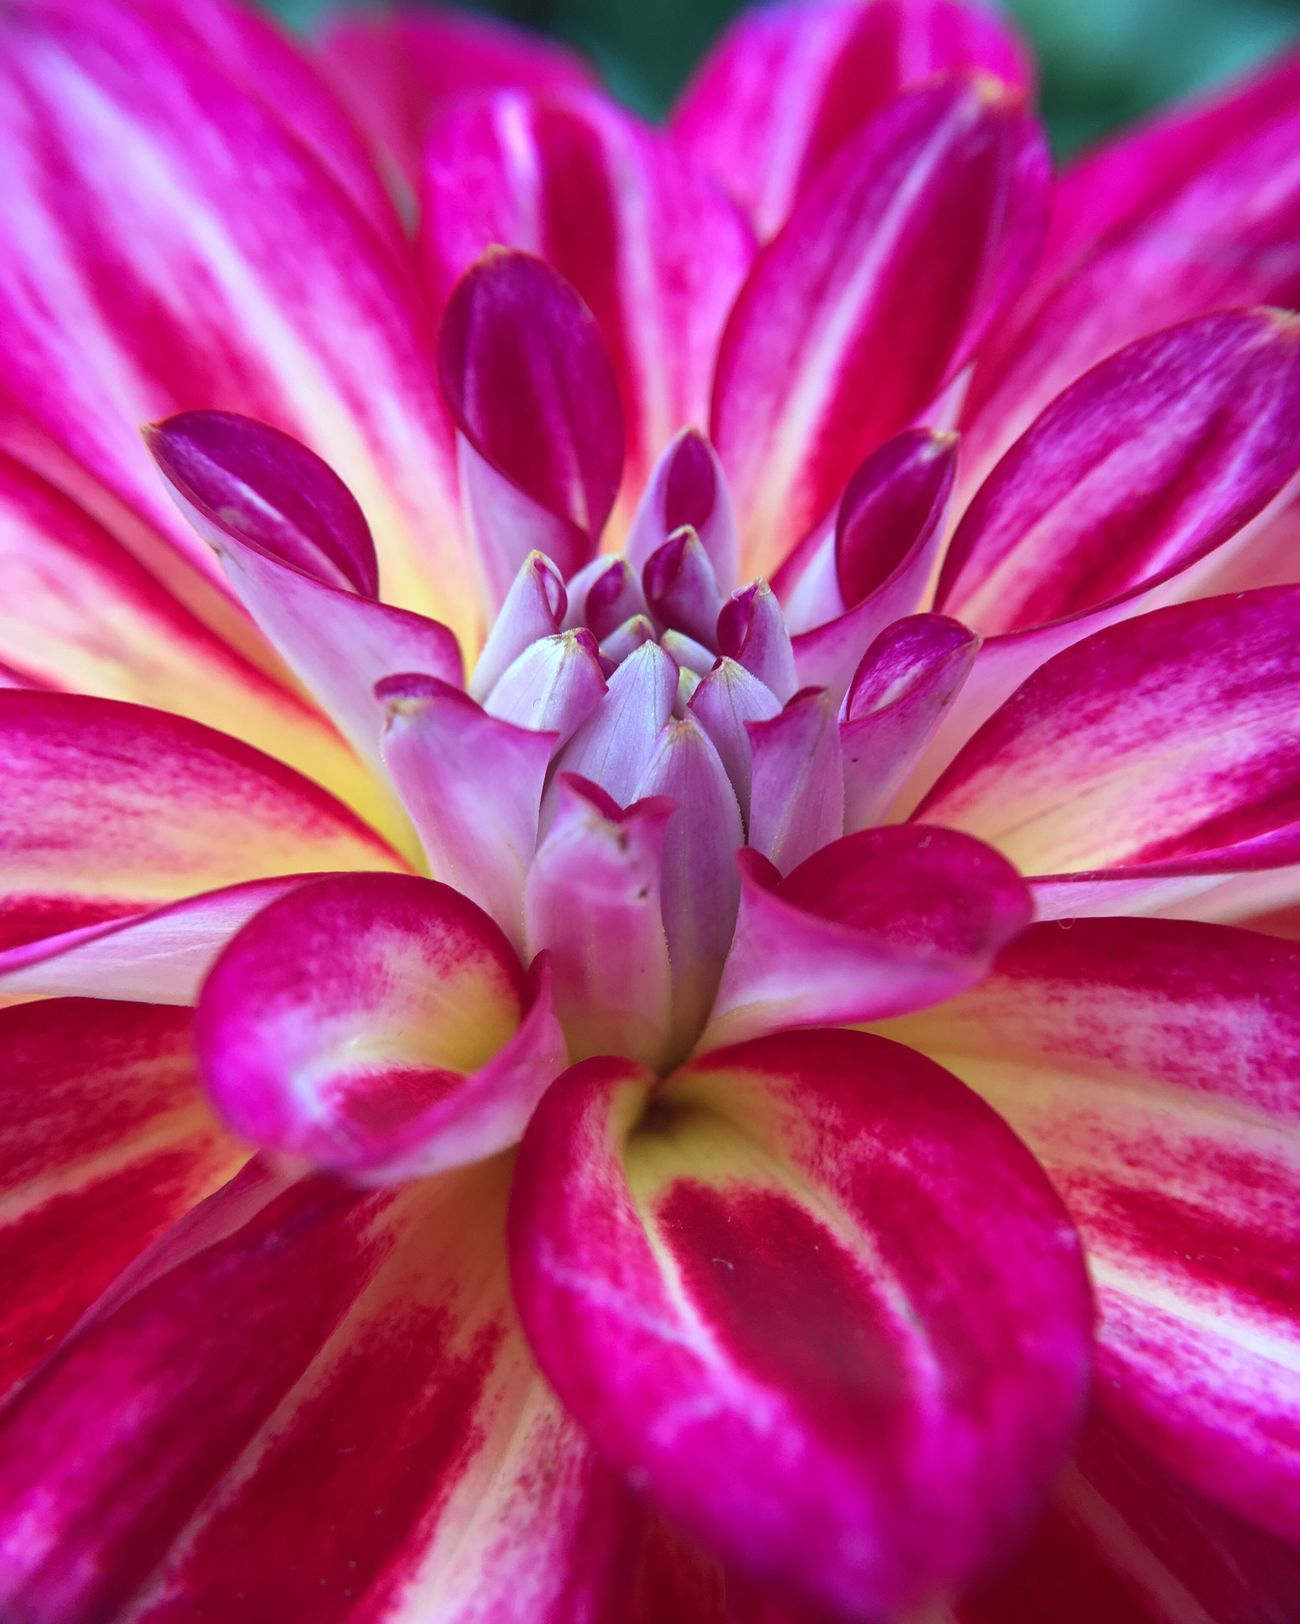 Closeup of dahlia flower shot with Inmacus HD Macro filter on Iphone6s IPhoneography Iphonephotography Macro Photography Inmacusgear Iphonegraphy Smartimaging Smartphonephotography Mobilephotography